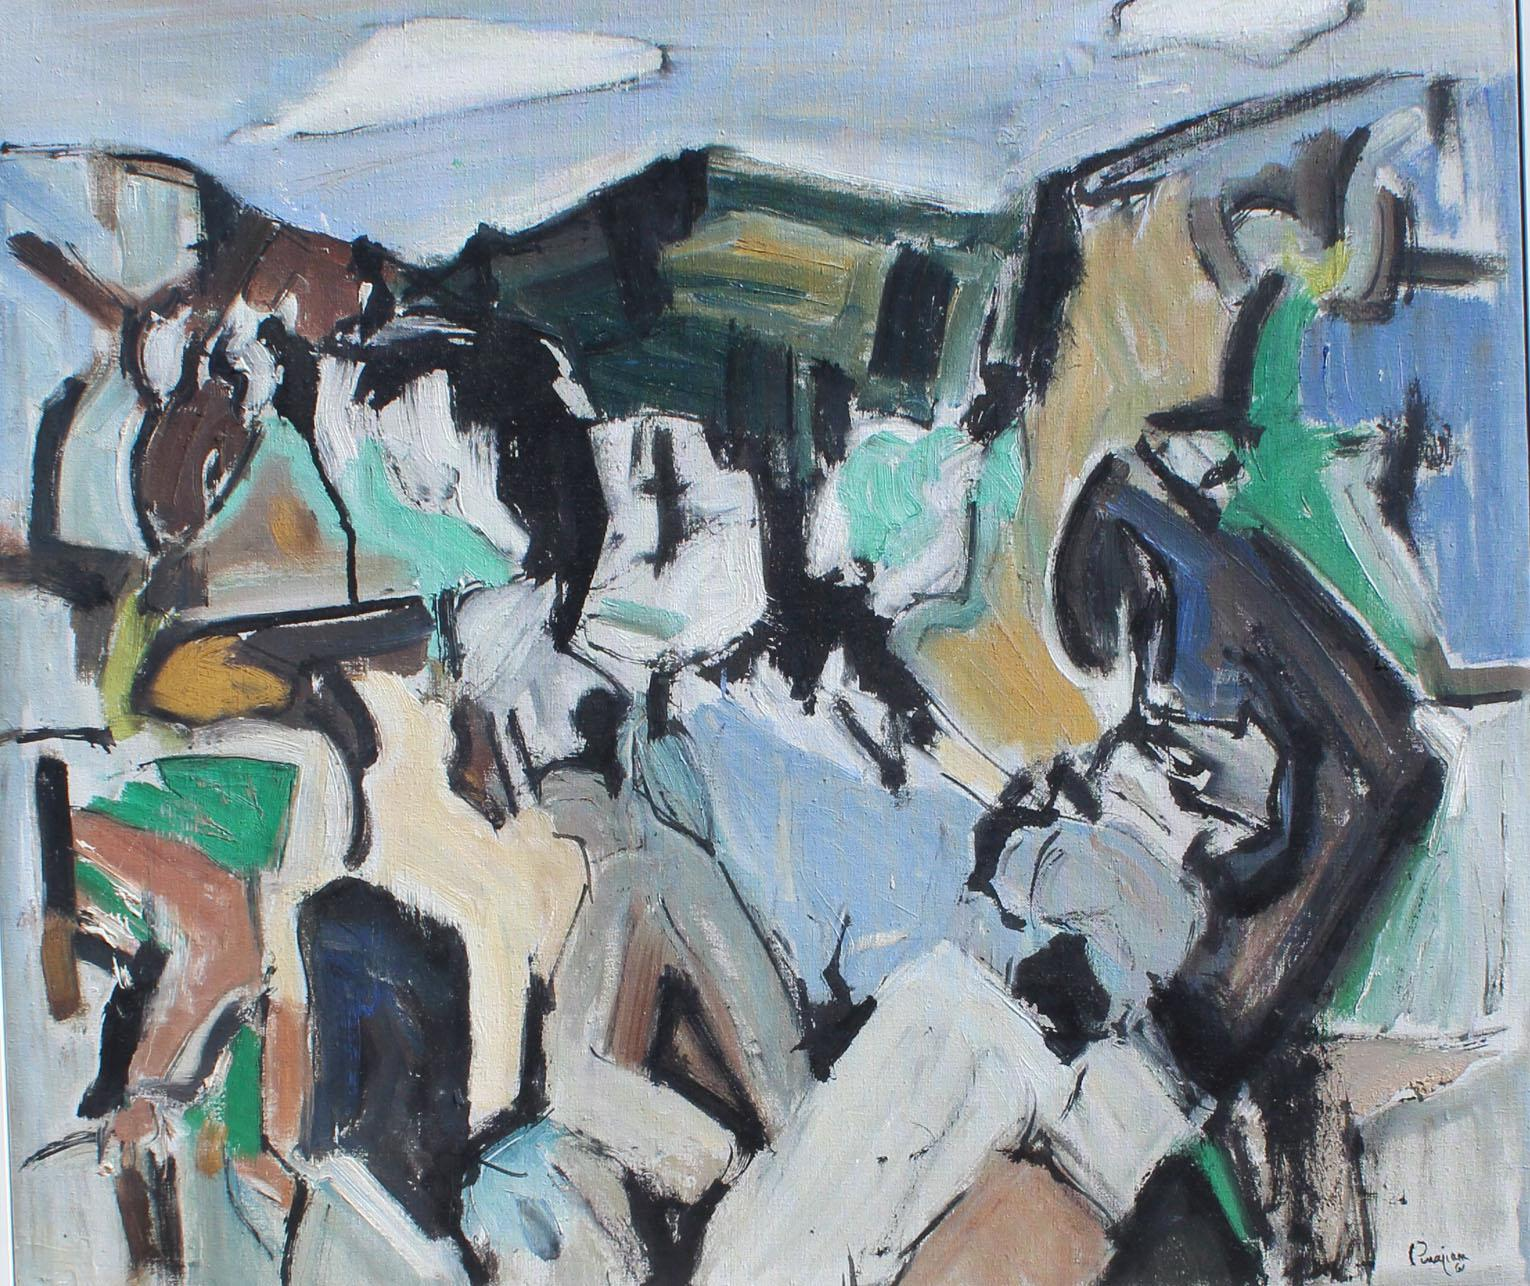 Arthur Pinajian , archived no. 389, 25x28 inches, oil on canvas, year 1961